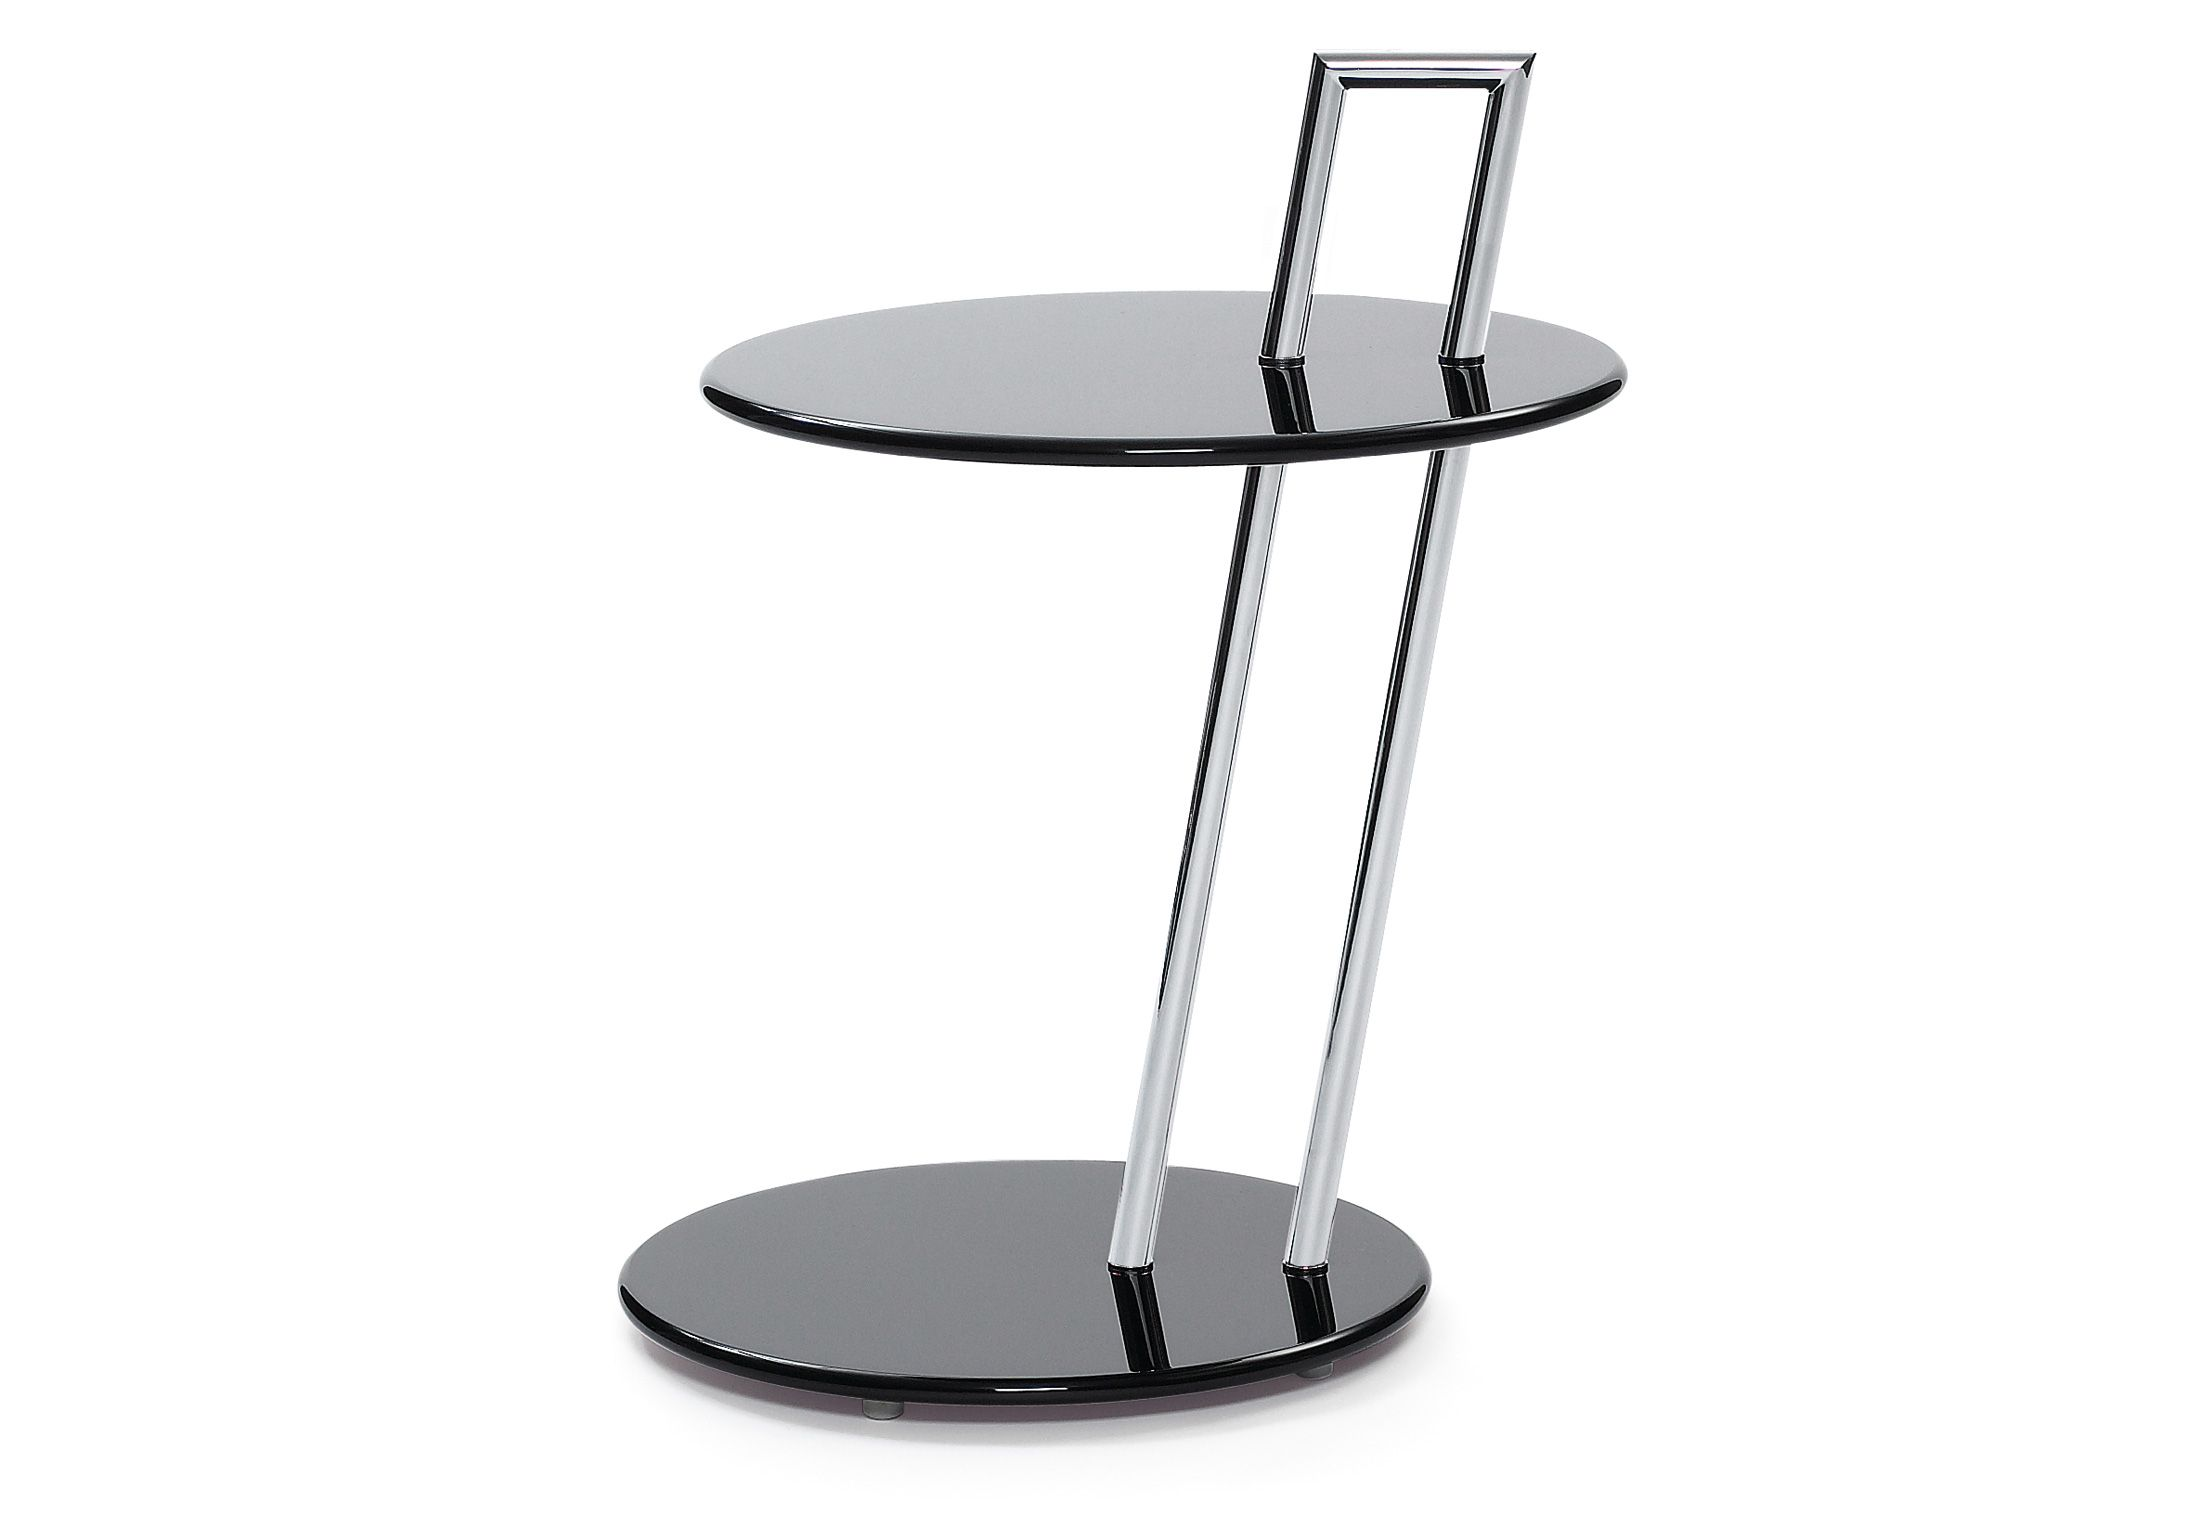 classicon occasional table round eileen gray disenos de on exclusive modern nesting end tables design ideas very functional furnishings id=32462